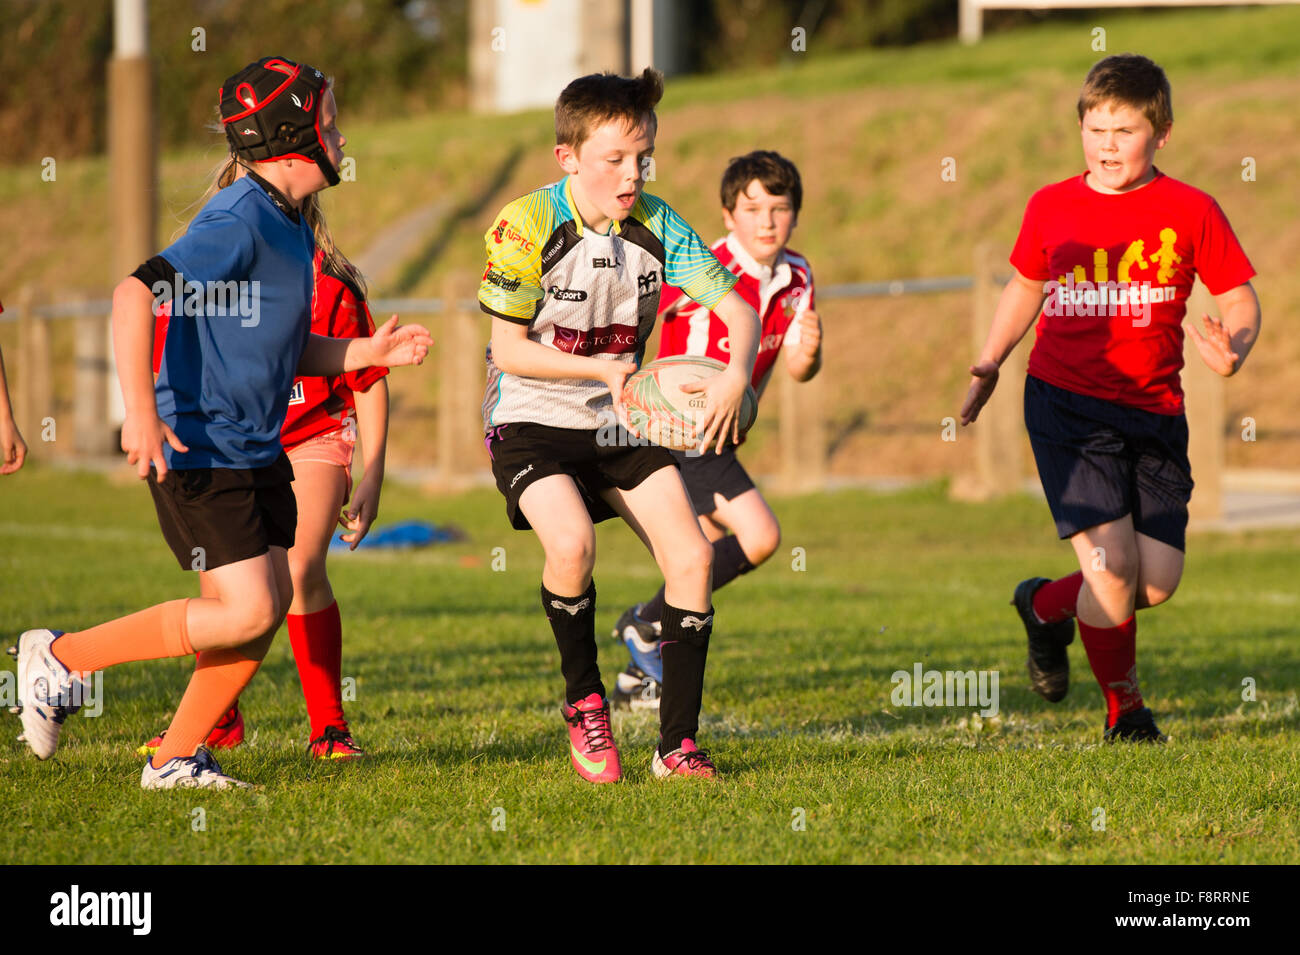 Young pre-teen boys  taking part in rugby training coaching practice, Aberaeron Wales UK - Stock Image